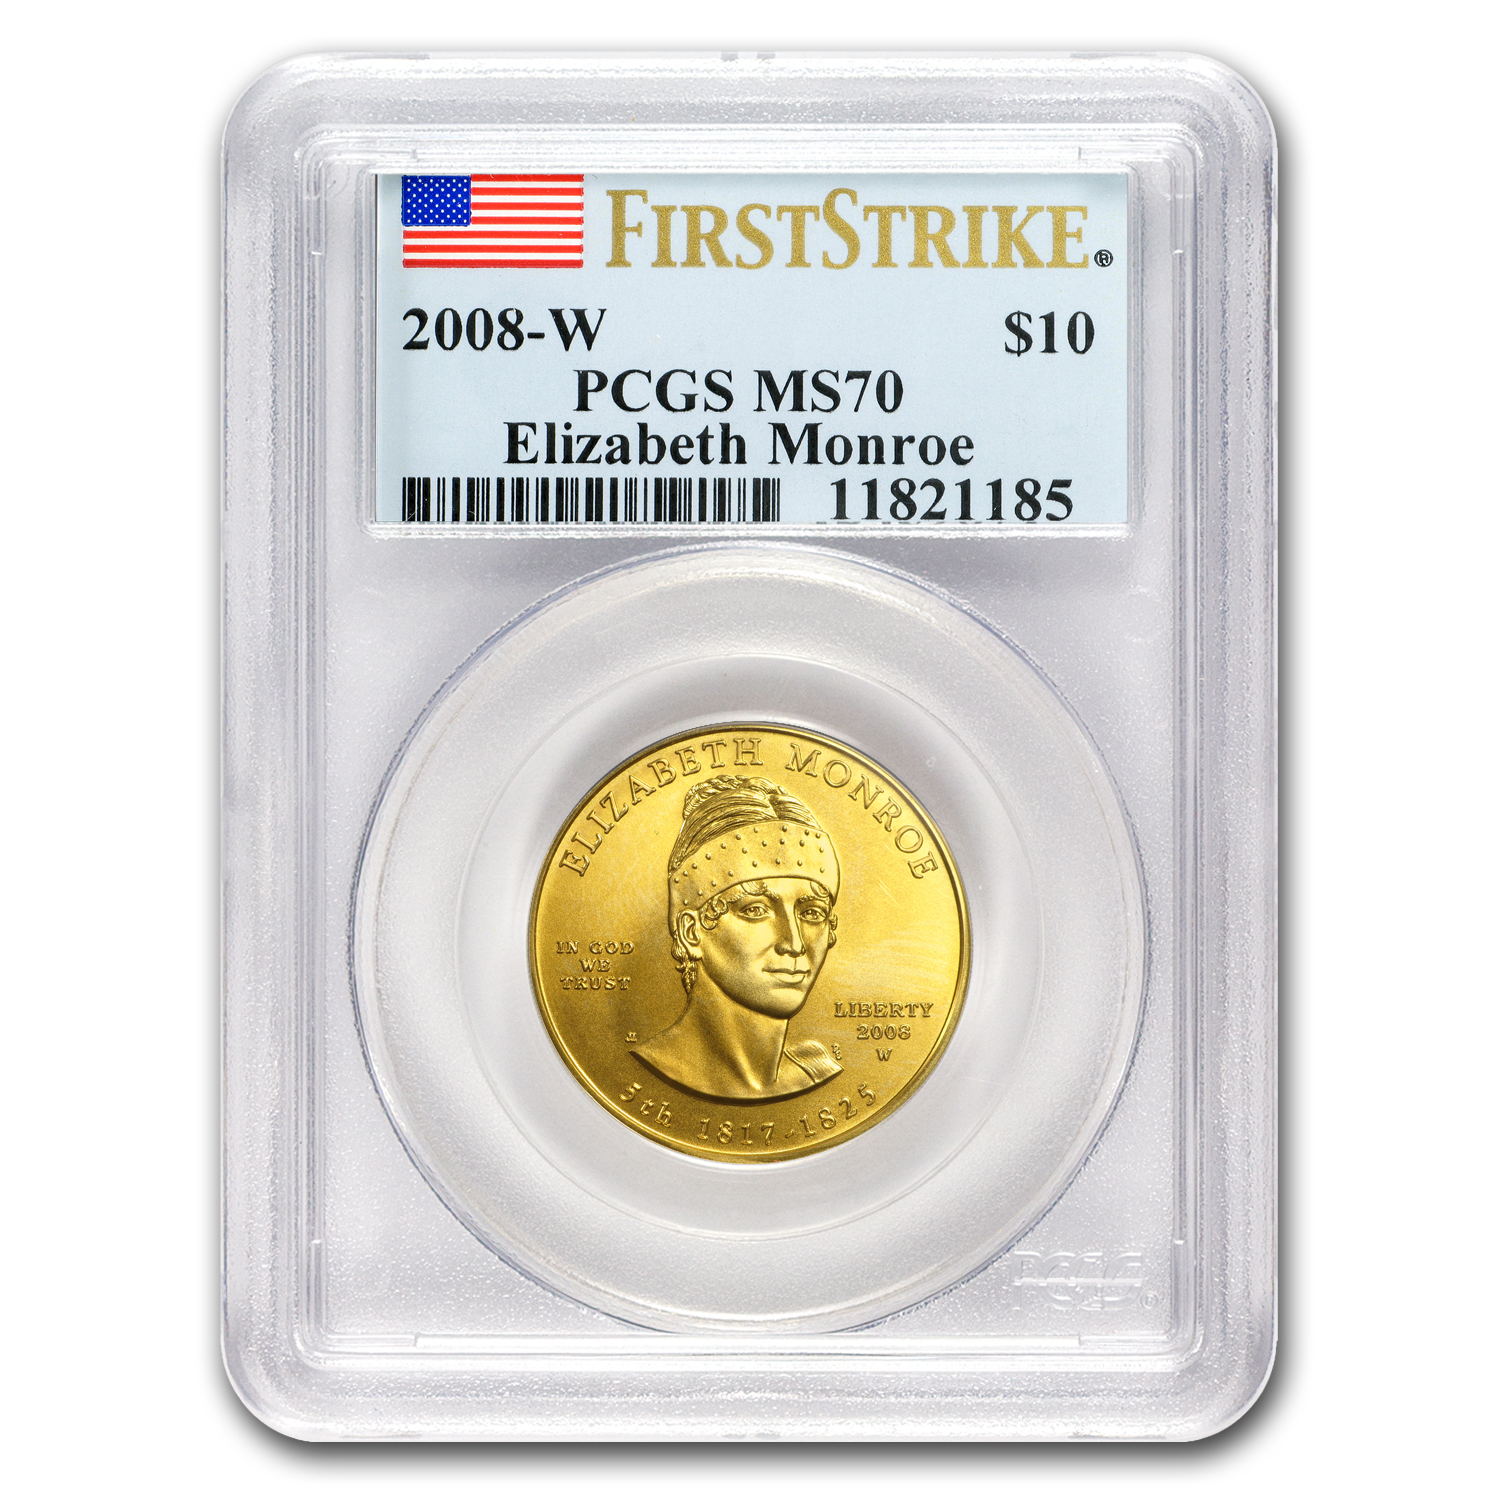 2008-W 1/2 oz Gold Elizabeth Monroe MS-70 PCGS (First Strike)